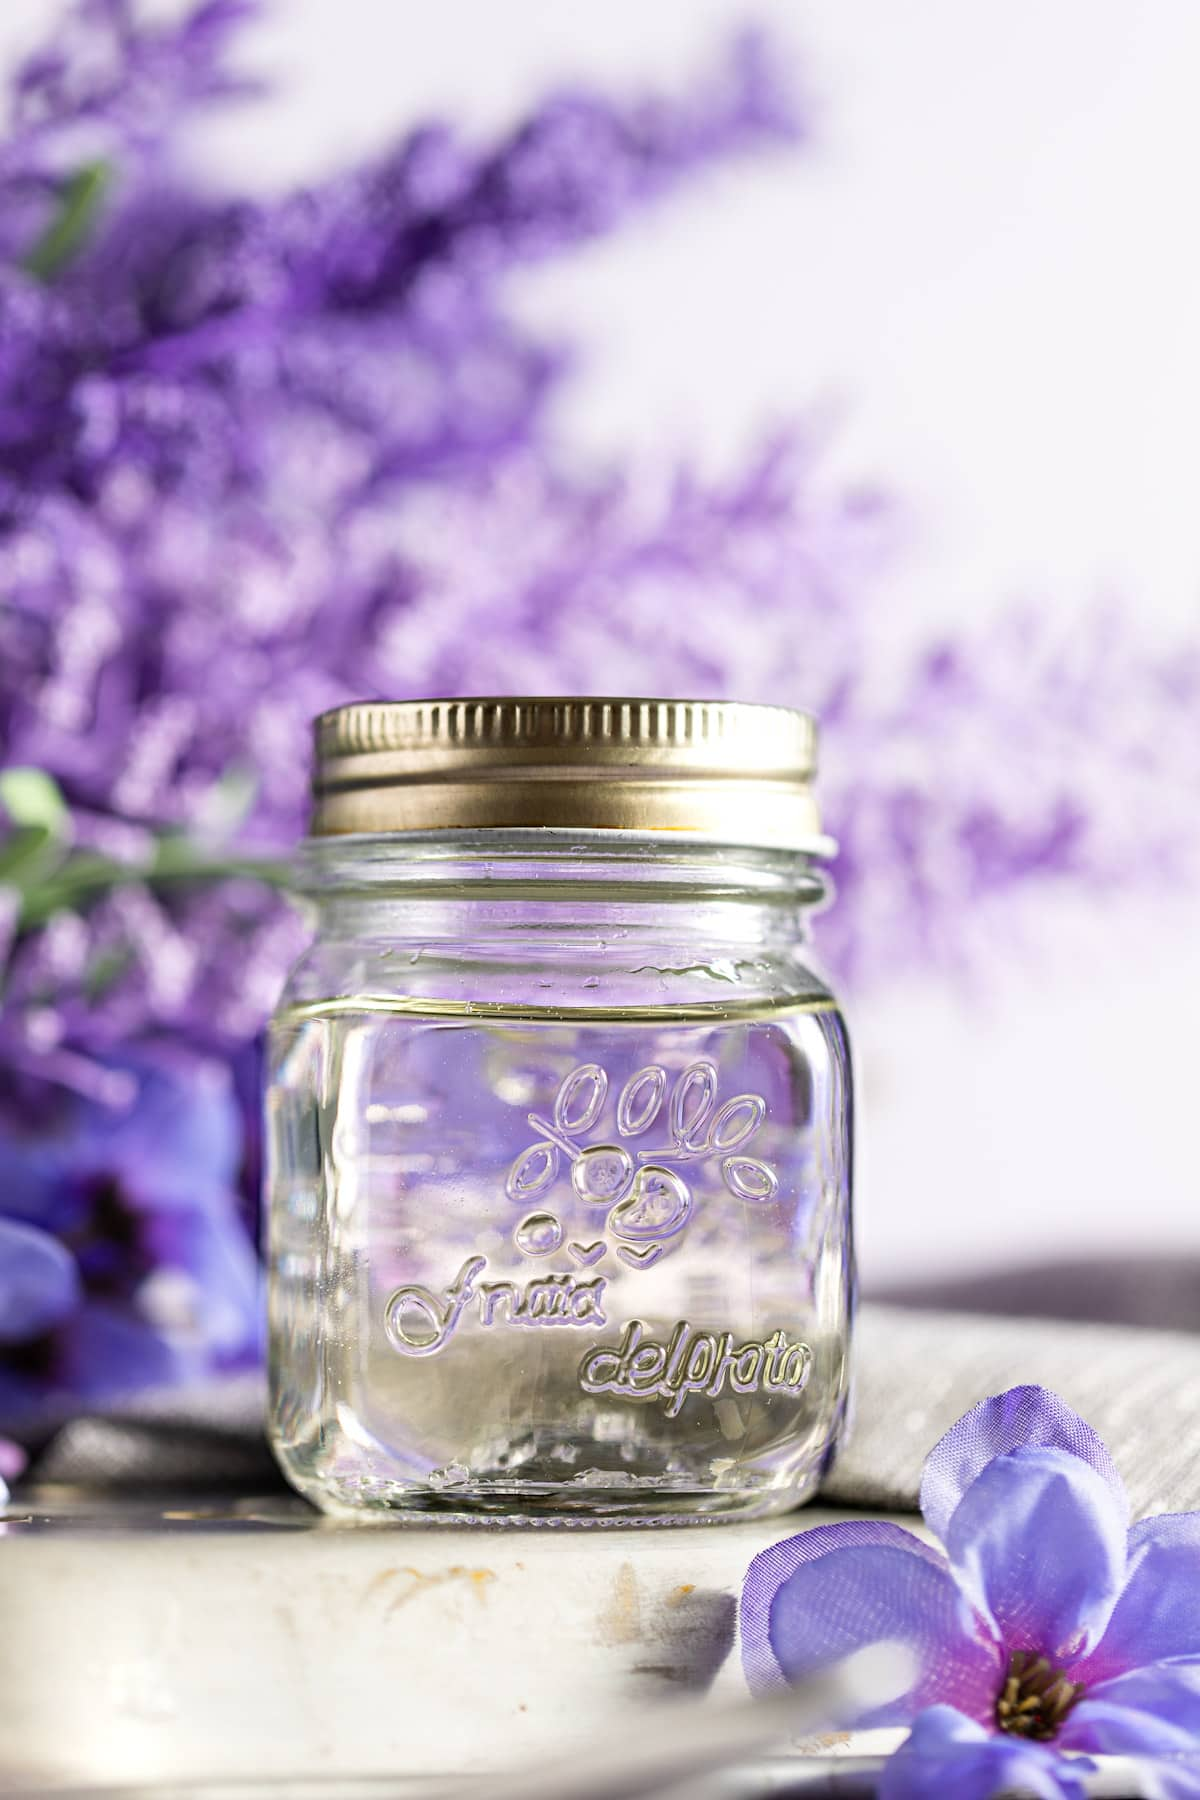 Lavender syrup in a jar, on a metal tray, with purple lavender in the background.